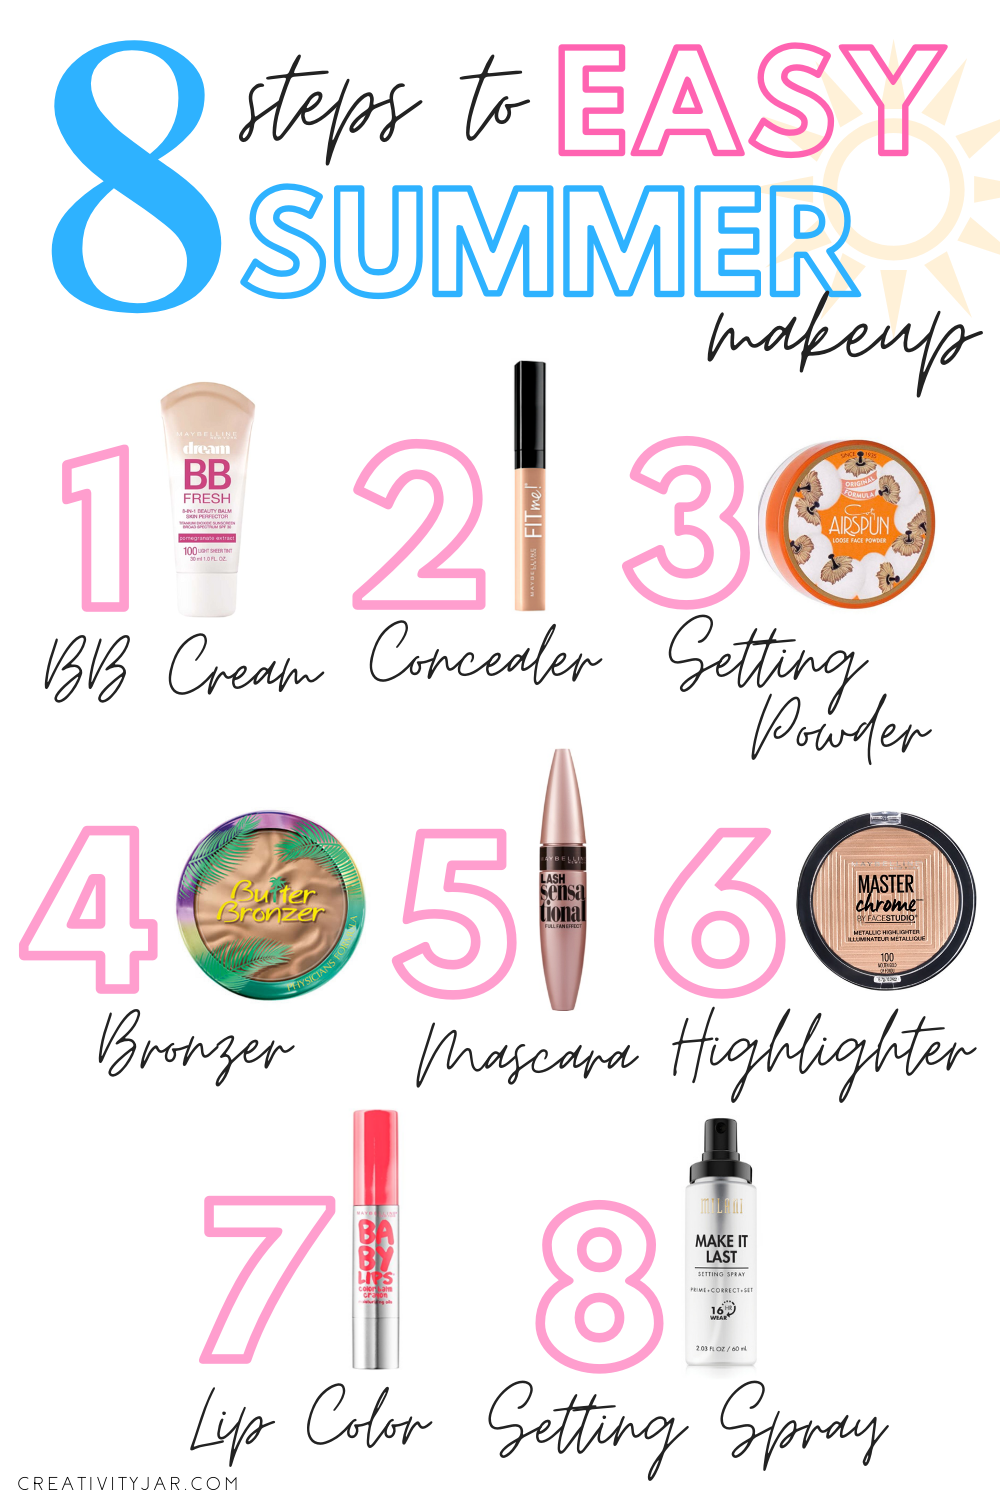 8 Steps To Easy Summer Makeup